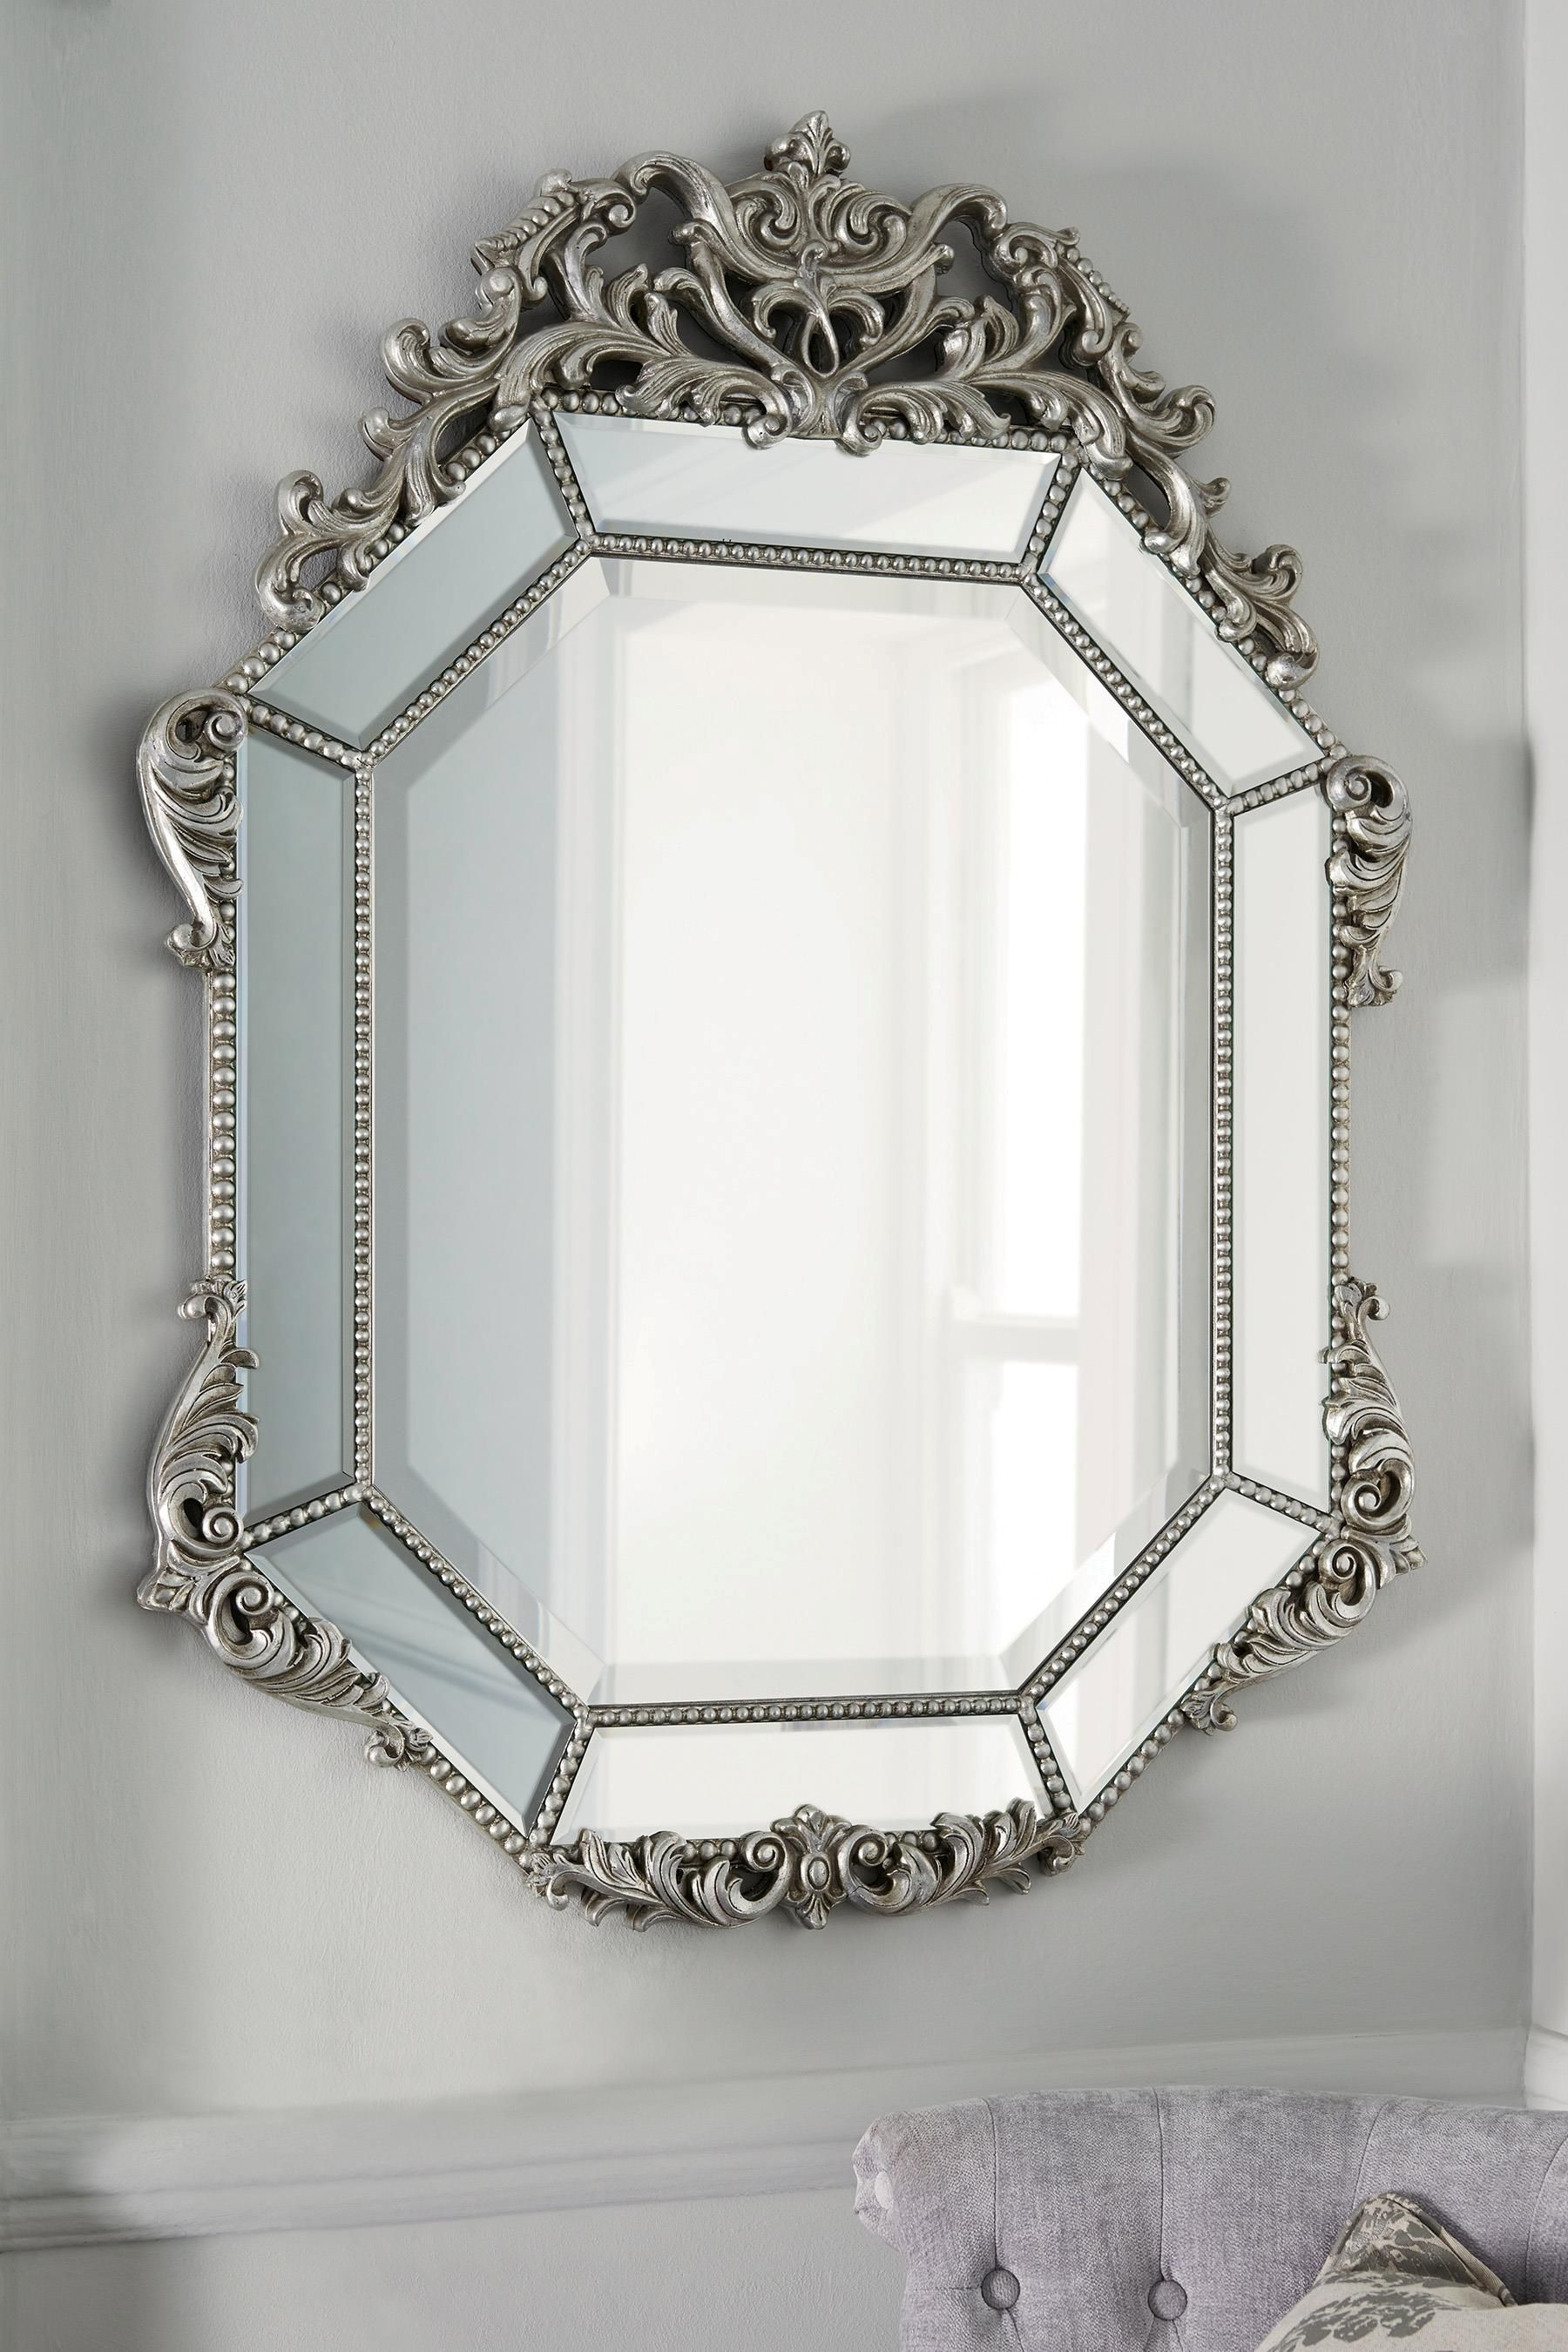 Buy Fleur Mirror From The Next Uk Online Shop New House With Regard To Mirror Online Shop (Image 6 of 15)